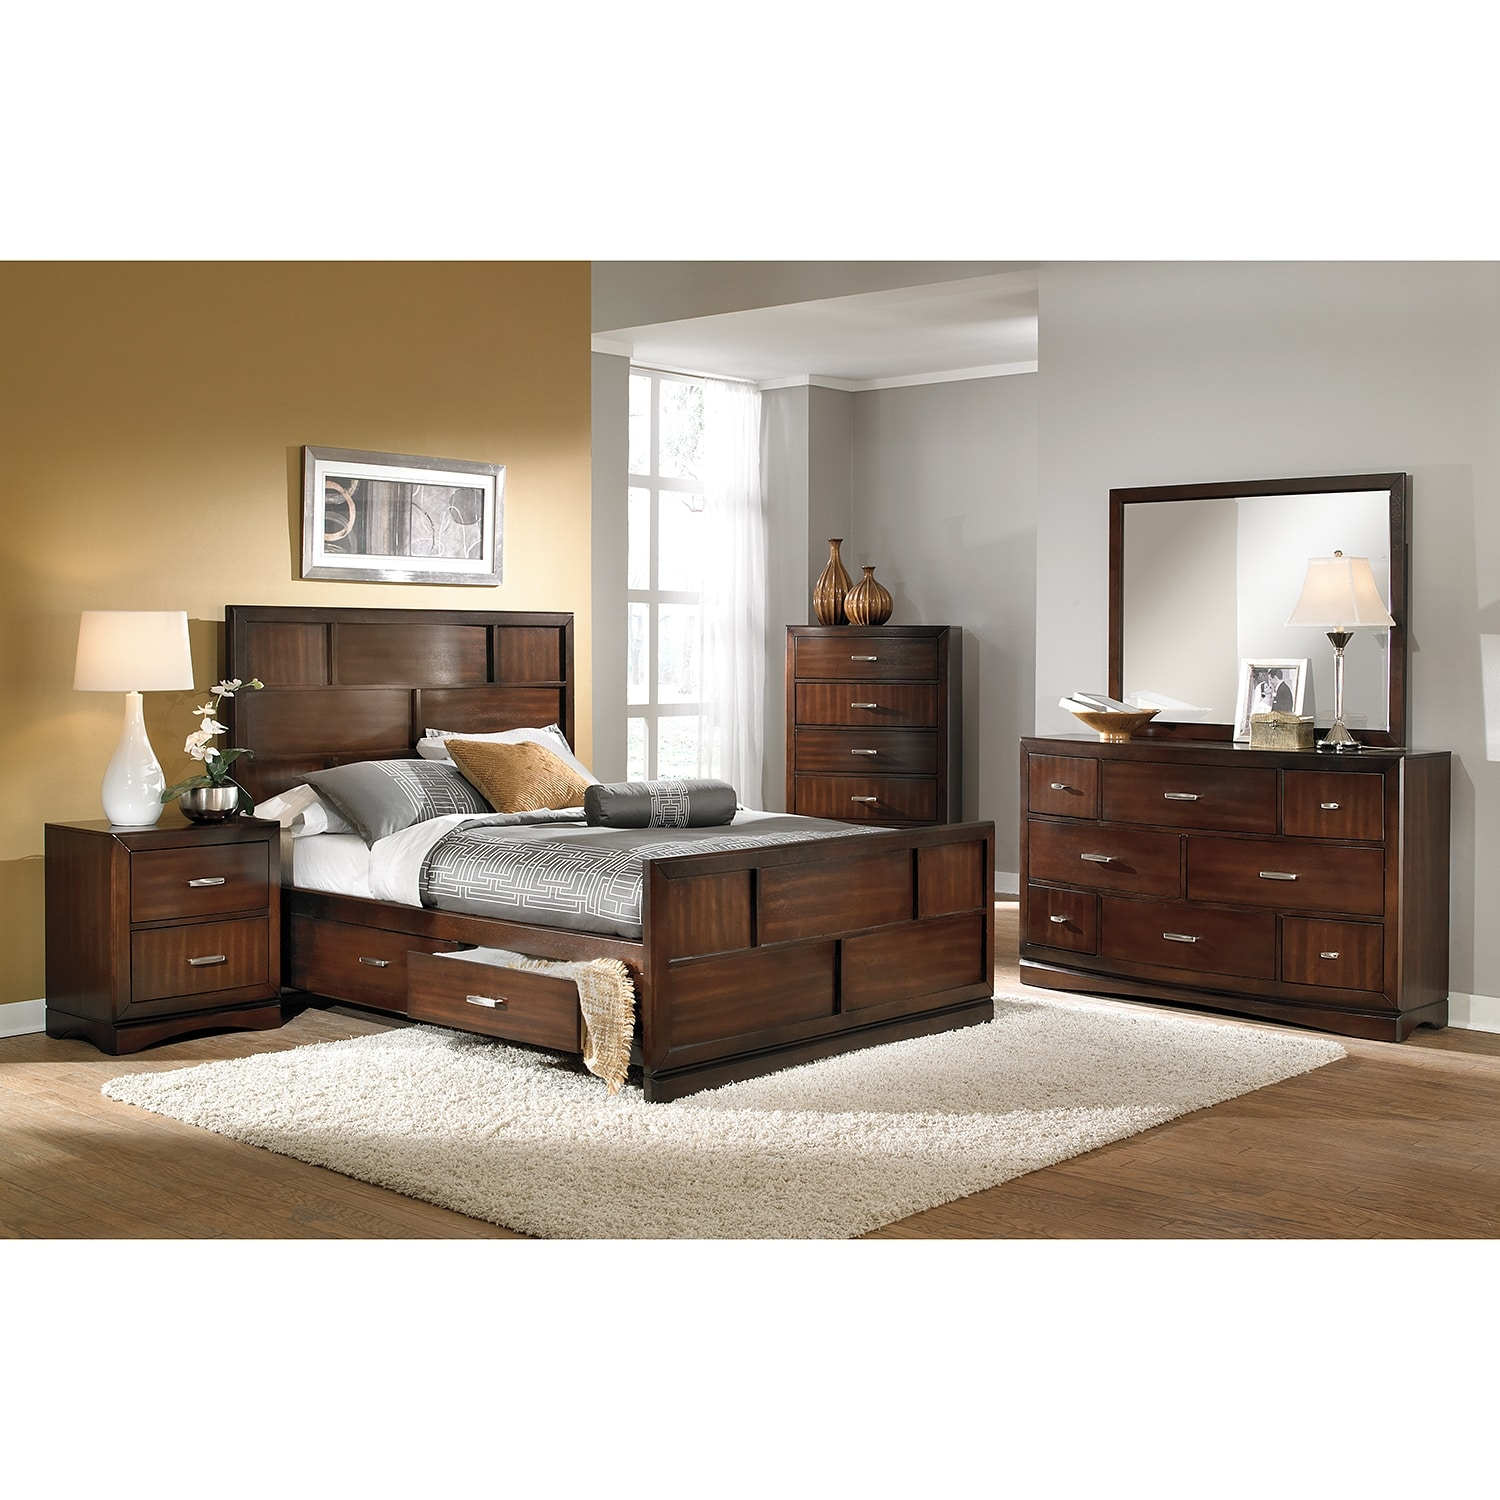 Toronto King Storage Bed